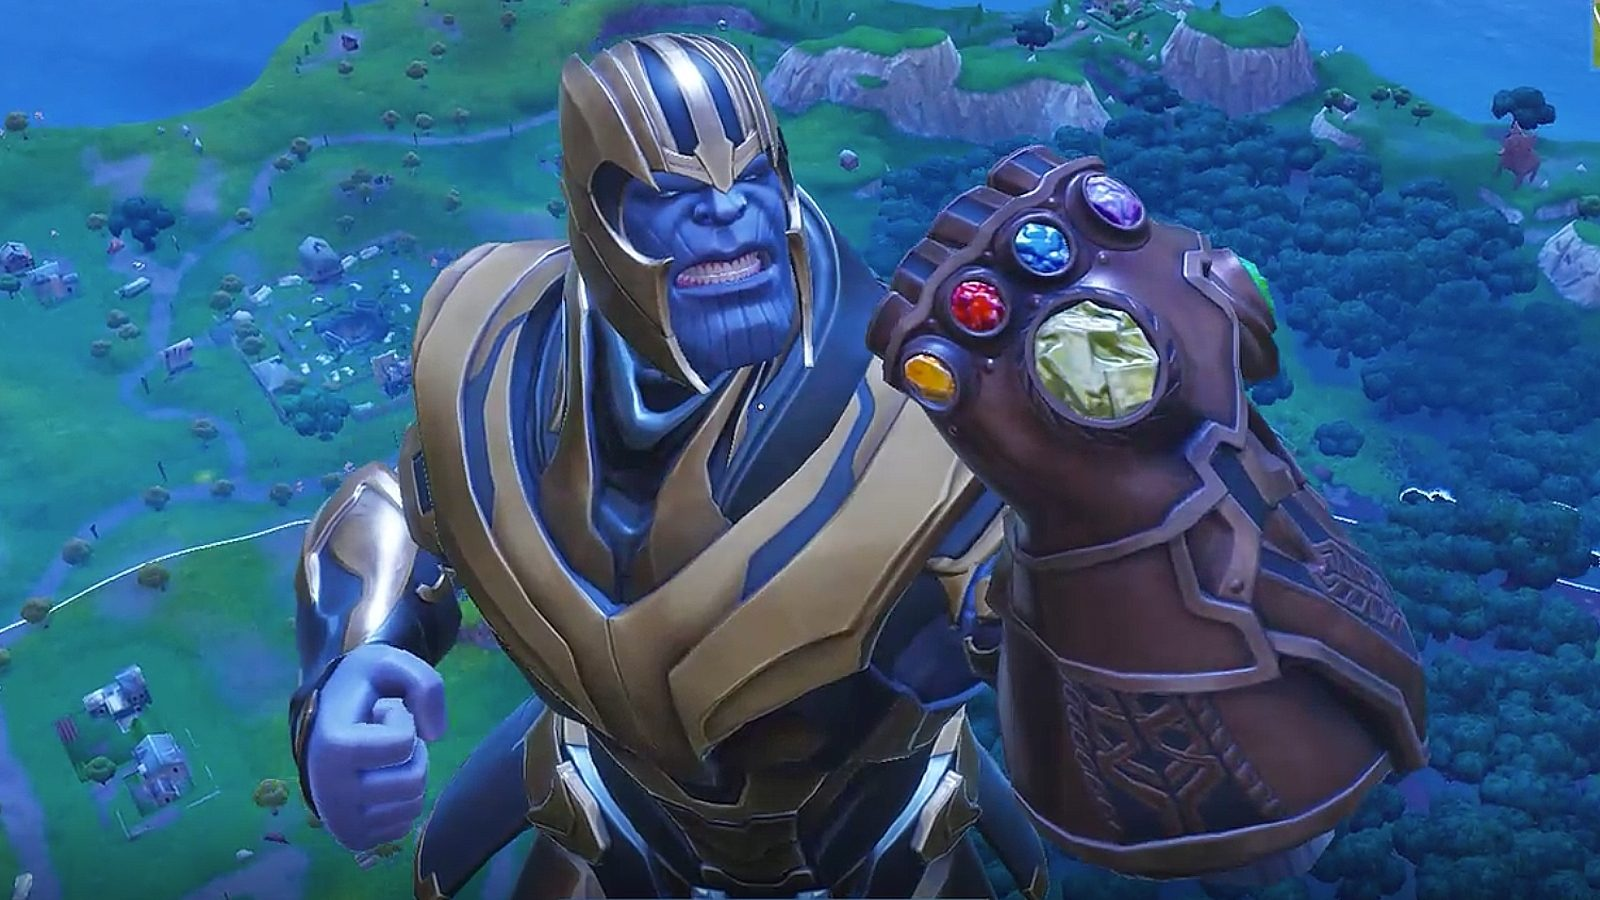 Watch Thanos dab  destroy  and dance in Fortnite   VentureBeat Watch Thanos dab  destroy  and dance in Fortnite